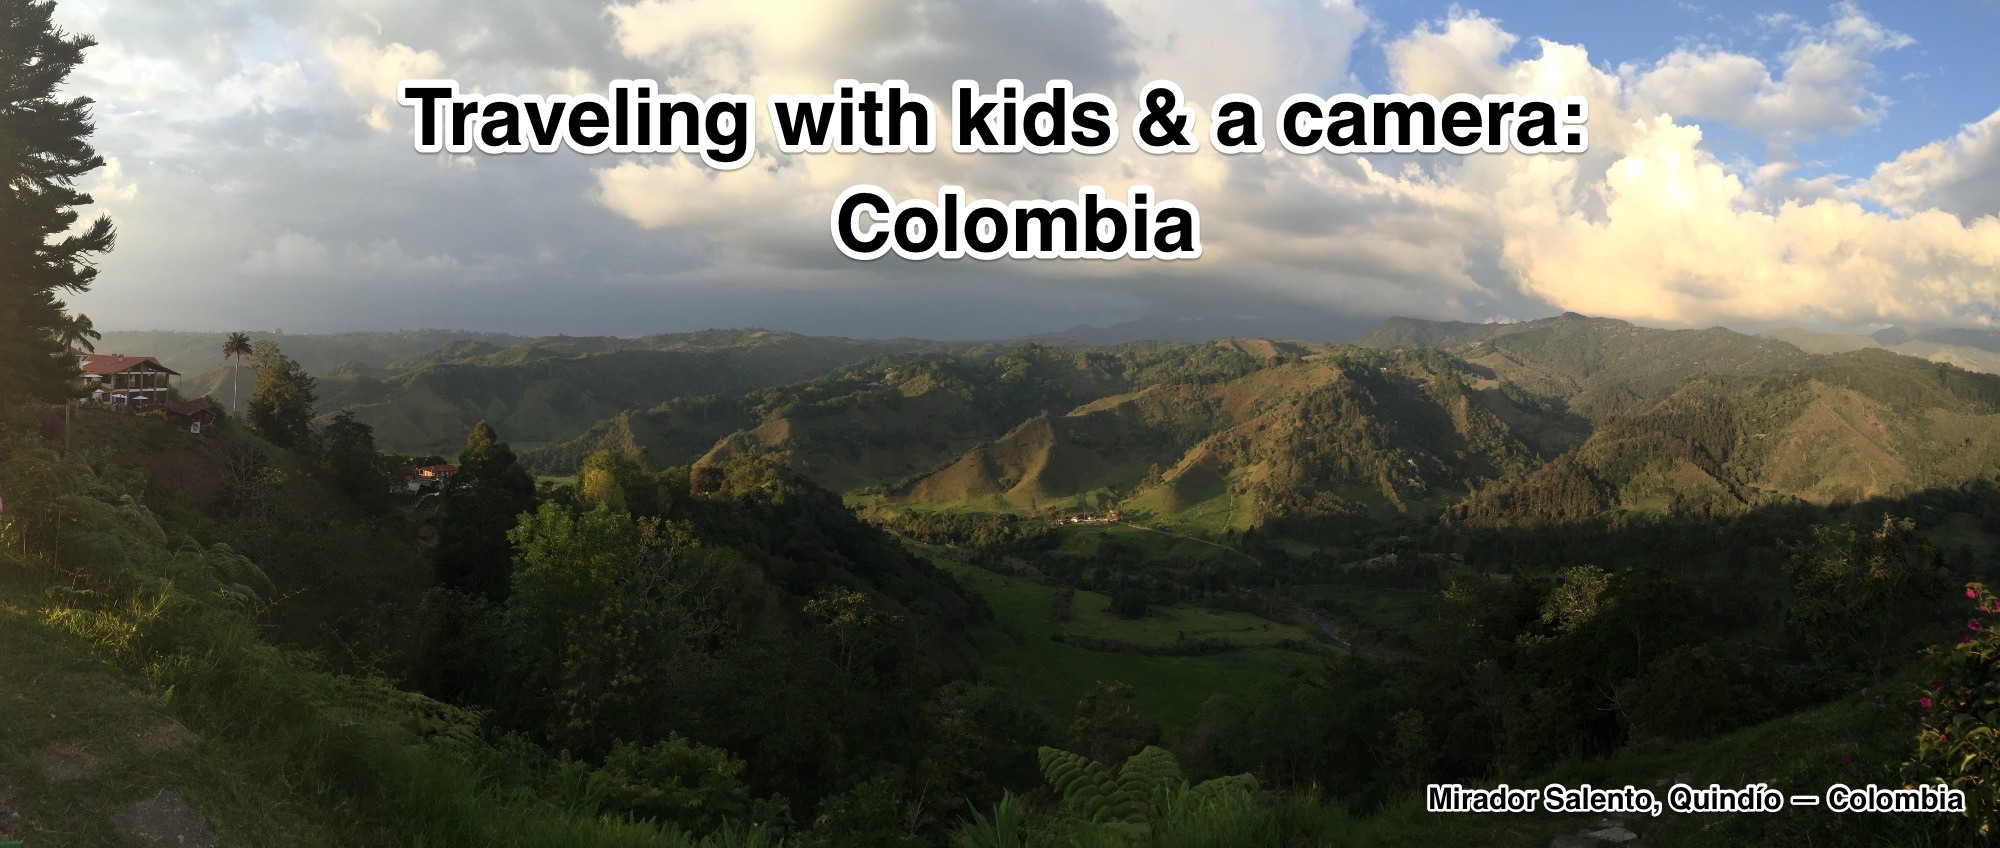 Traveling with kids & a camera: Colombia